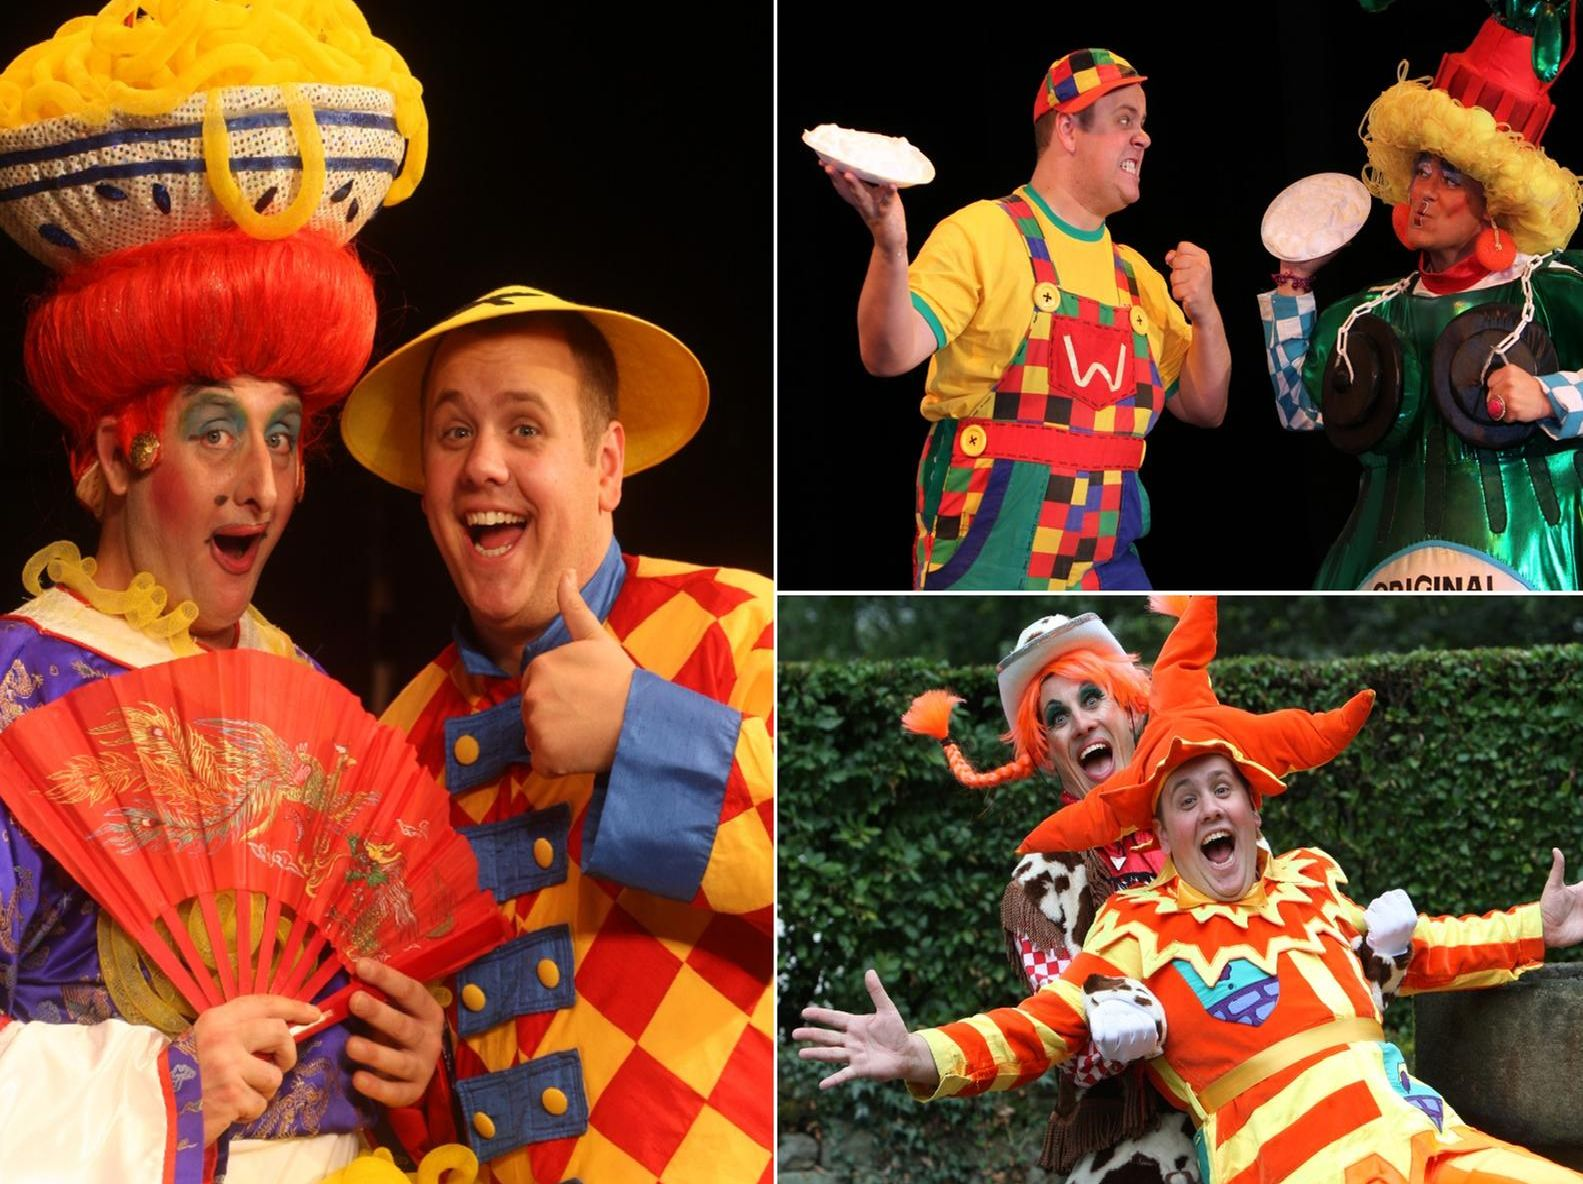 A decade of panto performances for Halifax's Neil Hurst